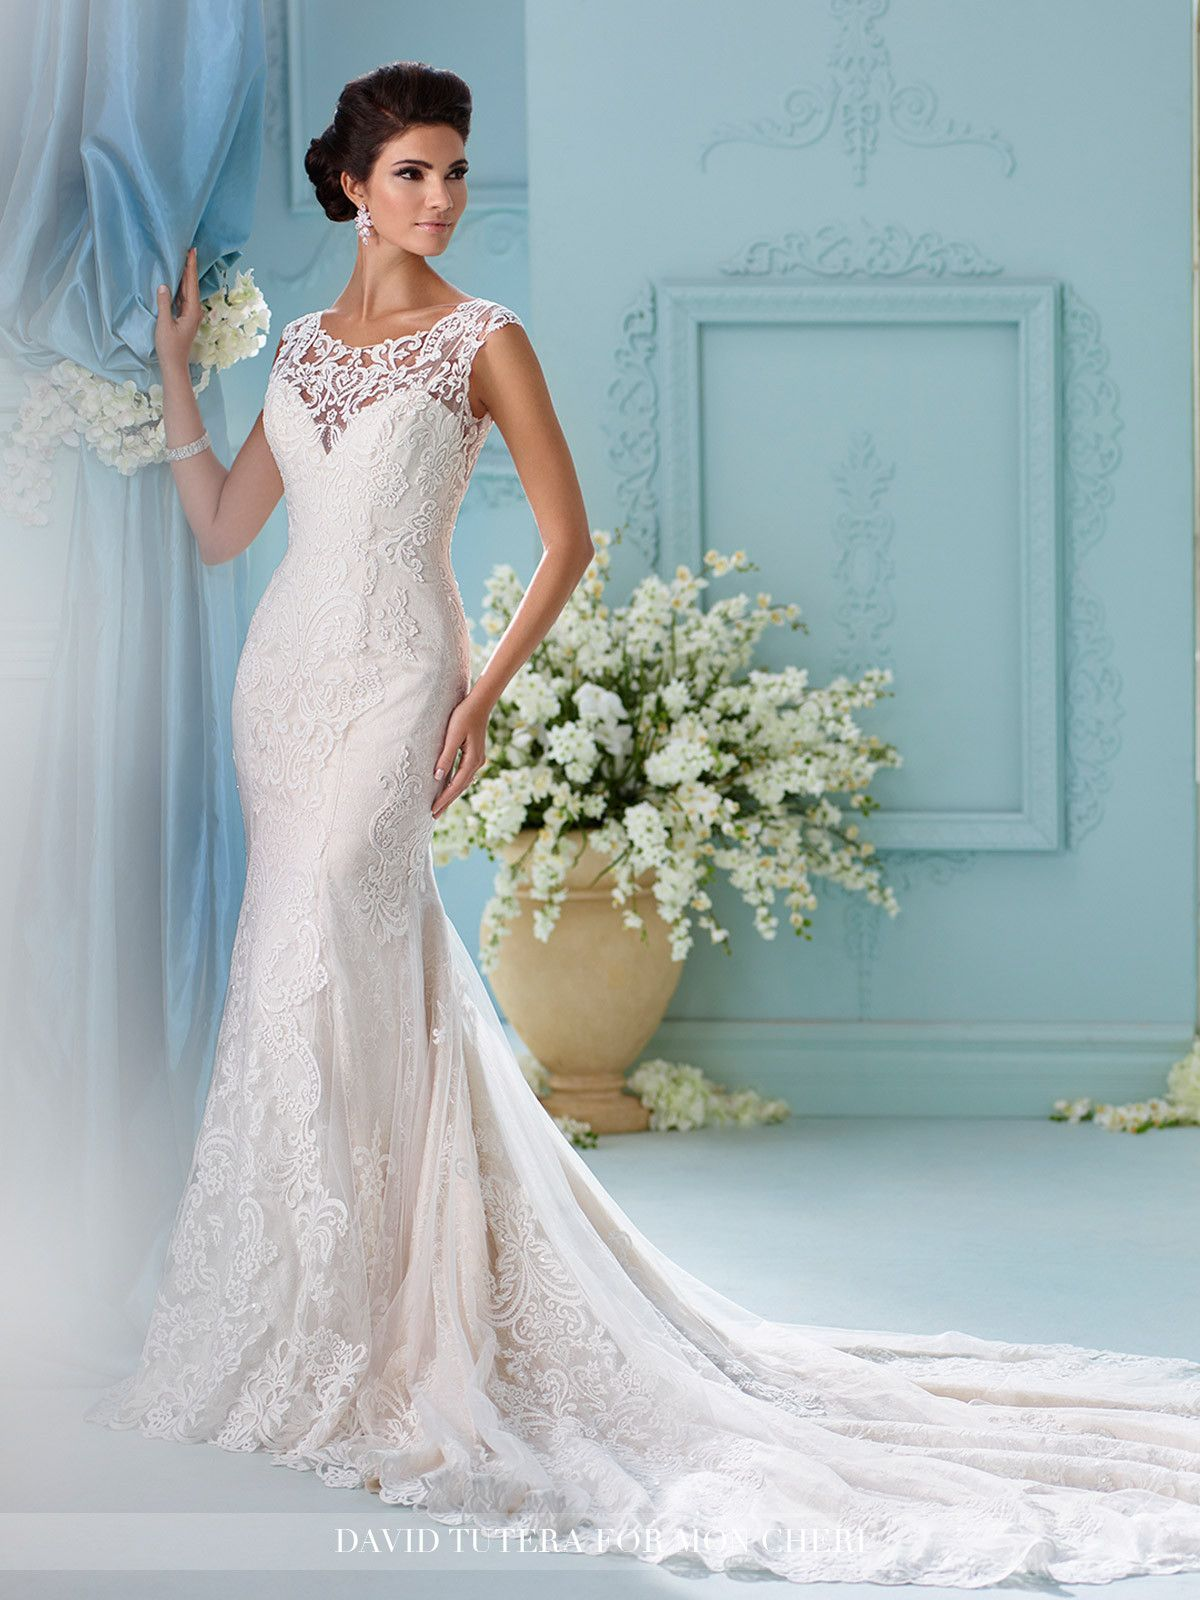 ADU Blog | Pinterest | David tutera, Bridal gowns and Gowns